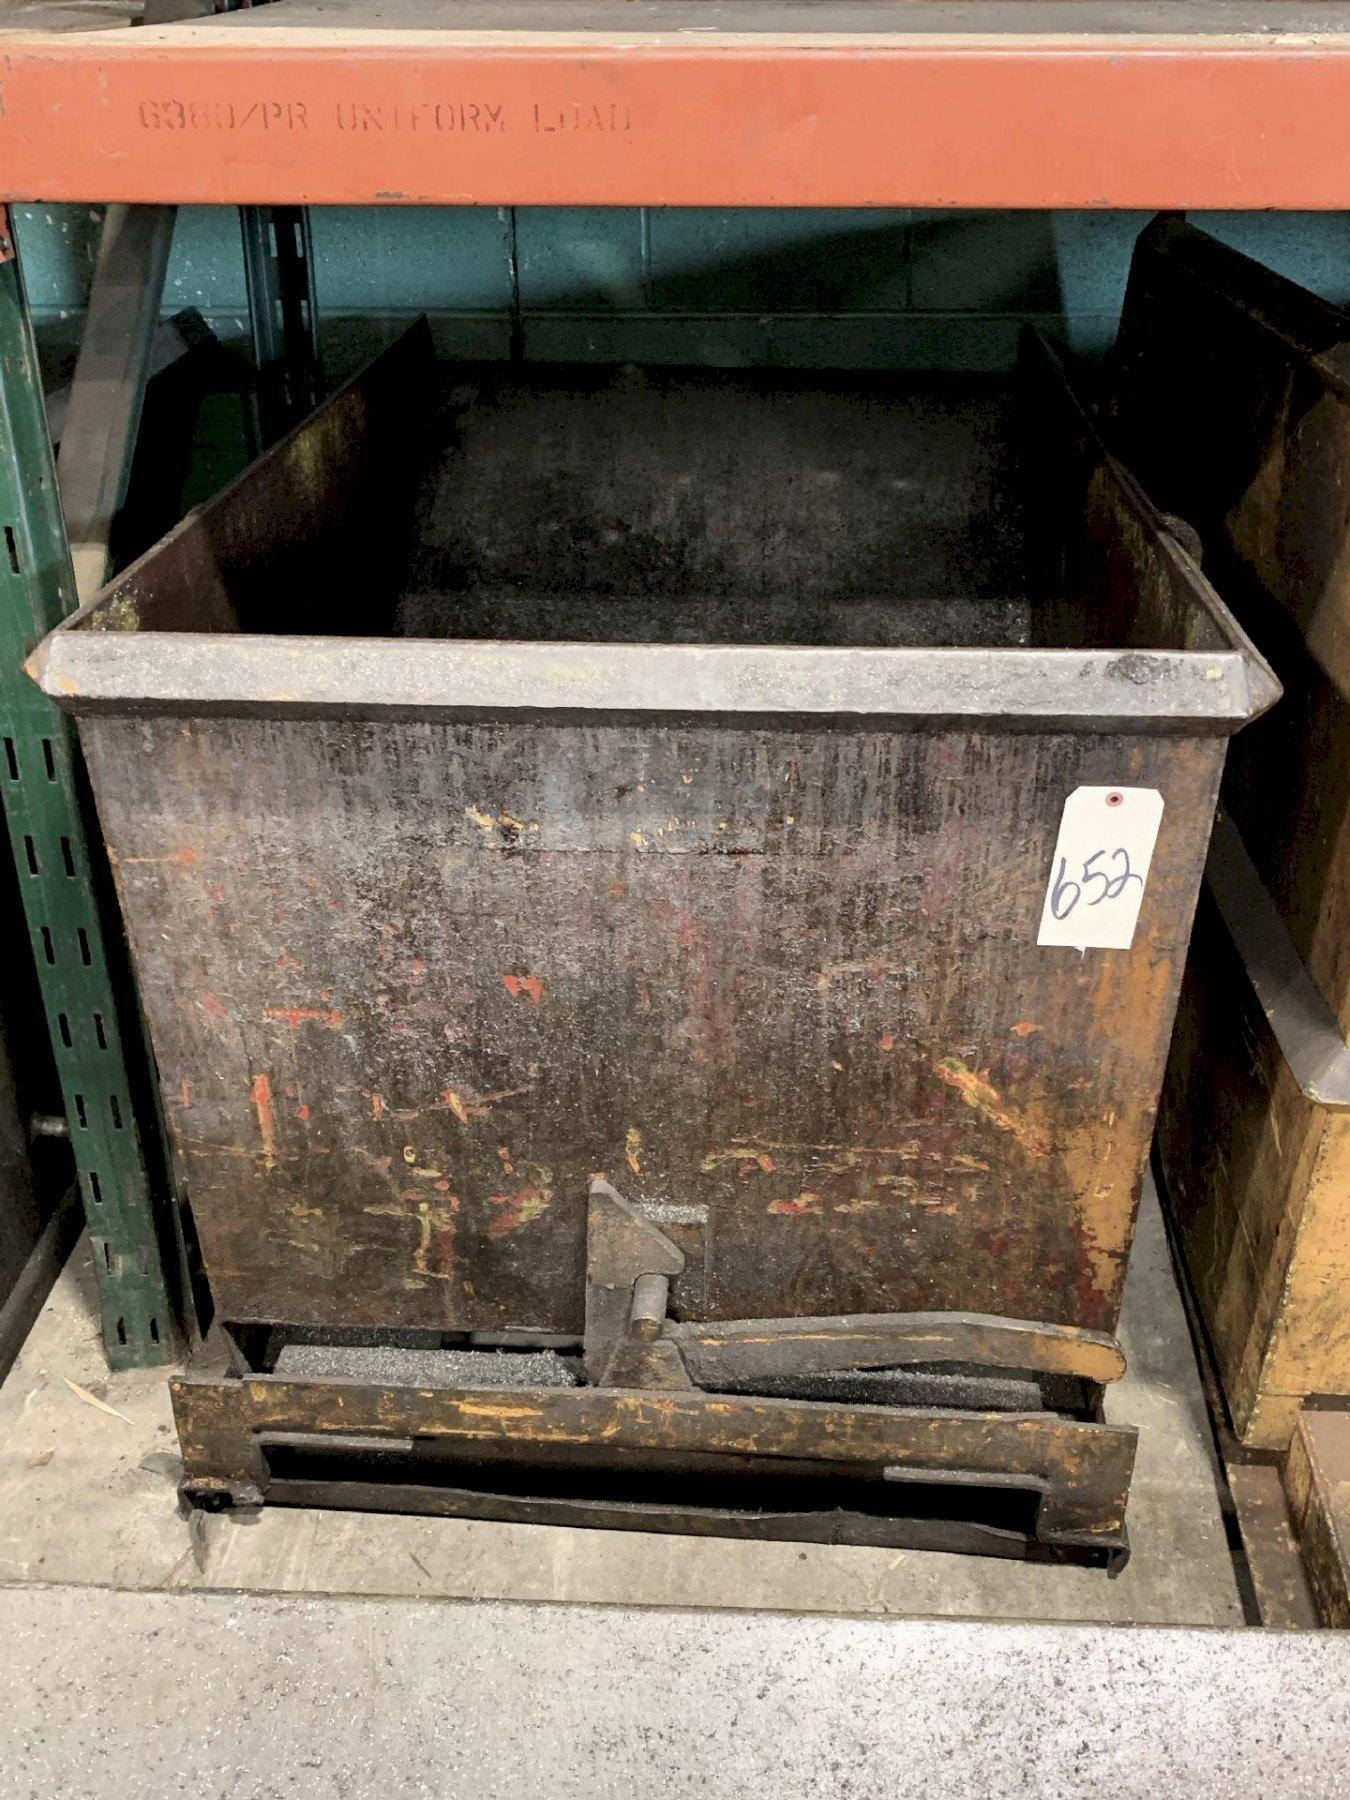 2 CUBIC YARD DUMP HOPPER. STOCK # 0951420